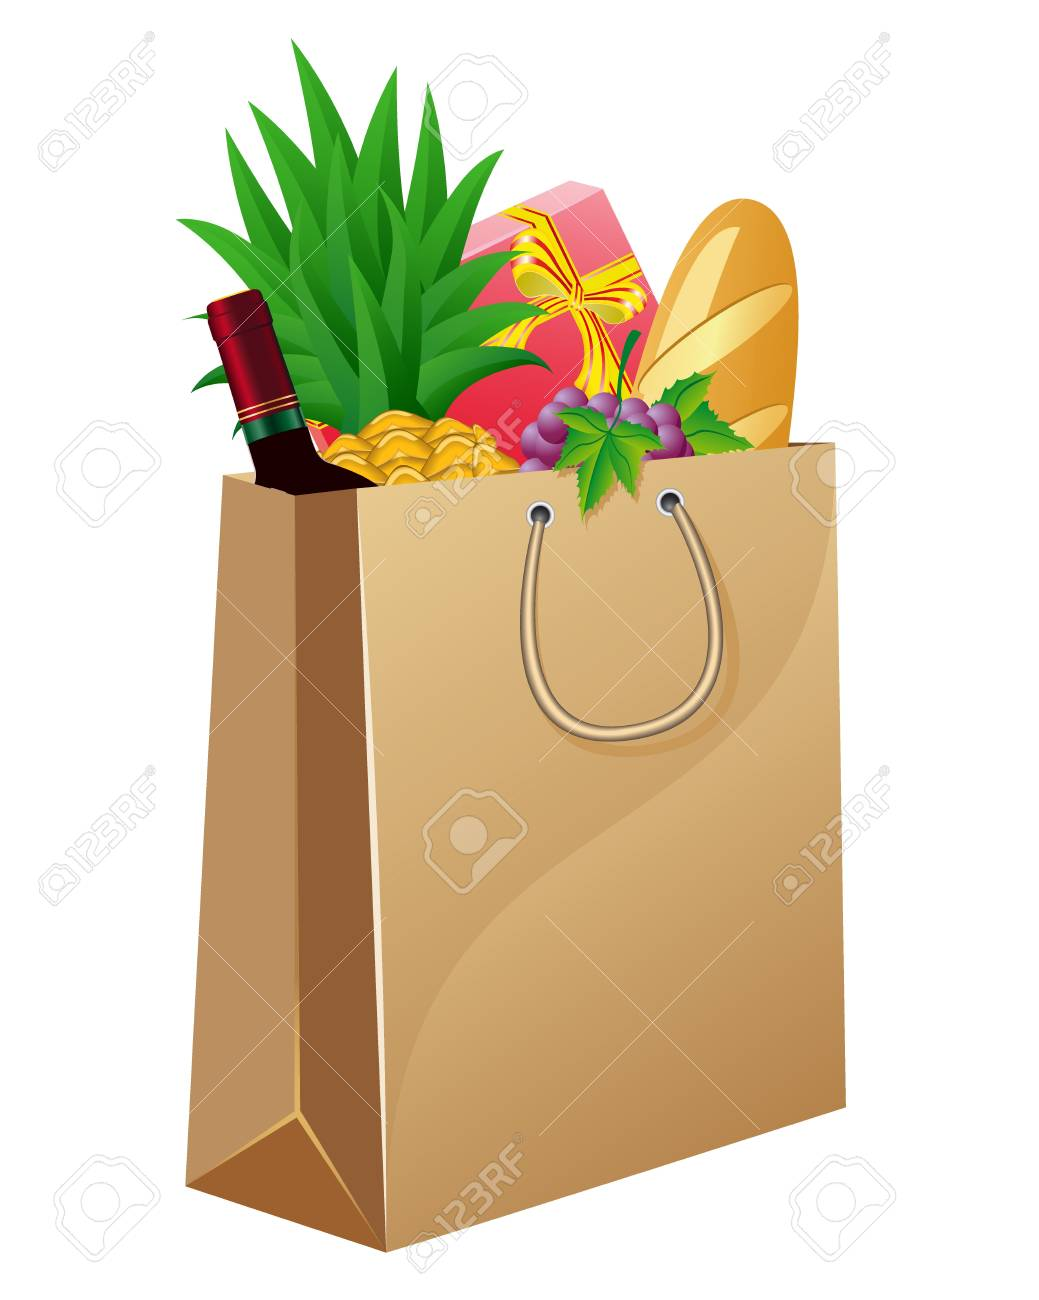 shopping bag with foods vector illustration Stock Photo - 9144733